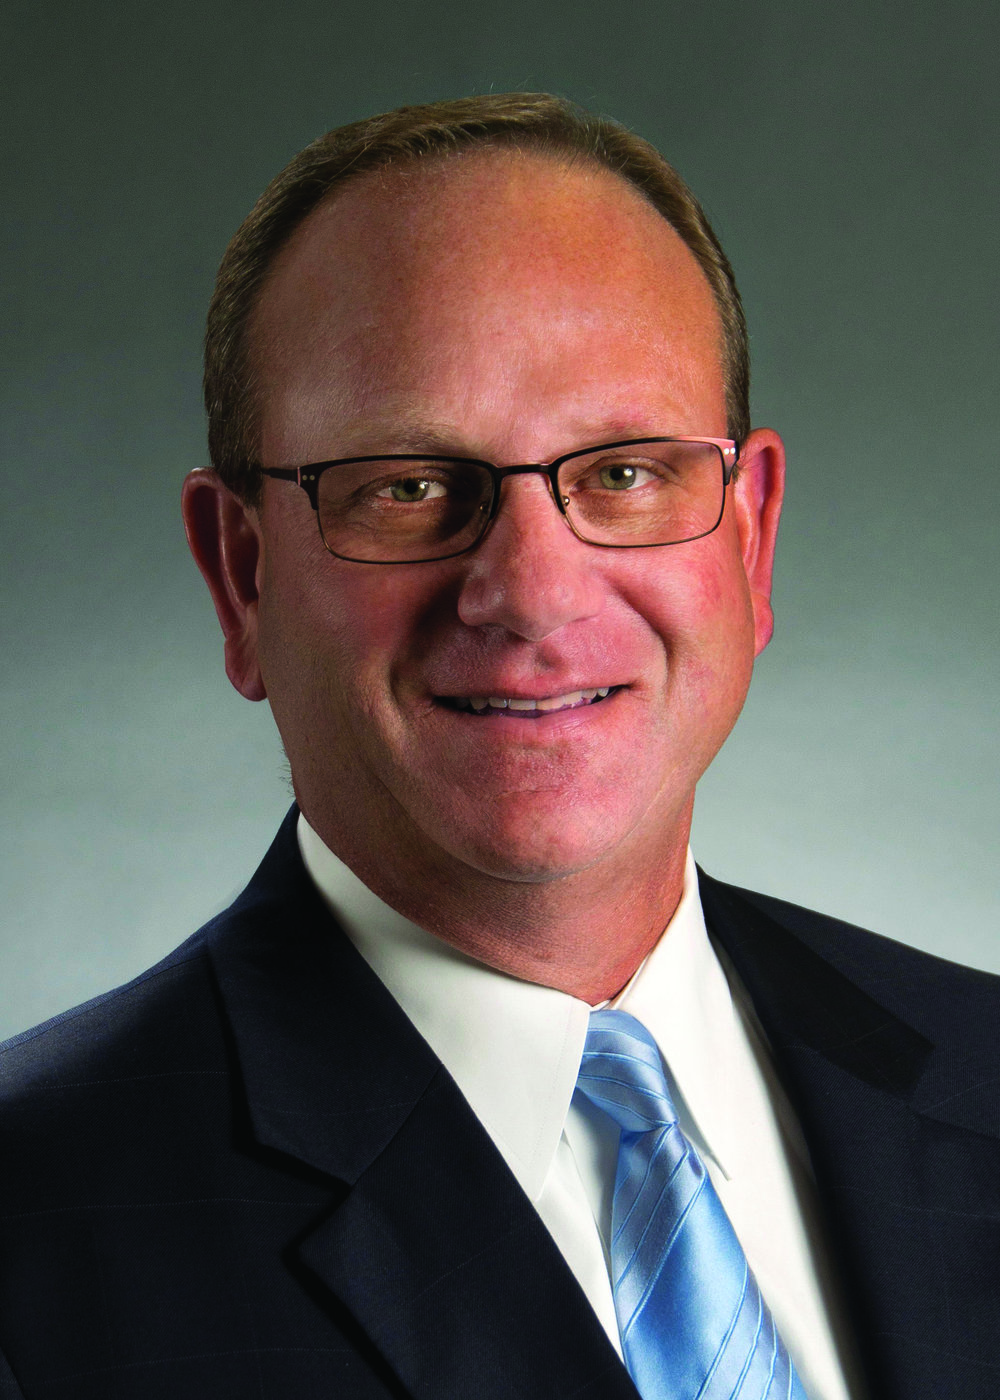 Dr. Todd White, Blue Valley Schools Superintendent